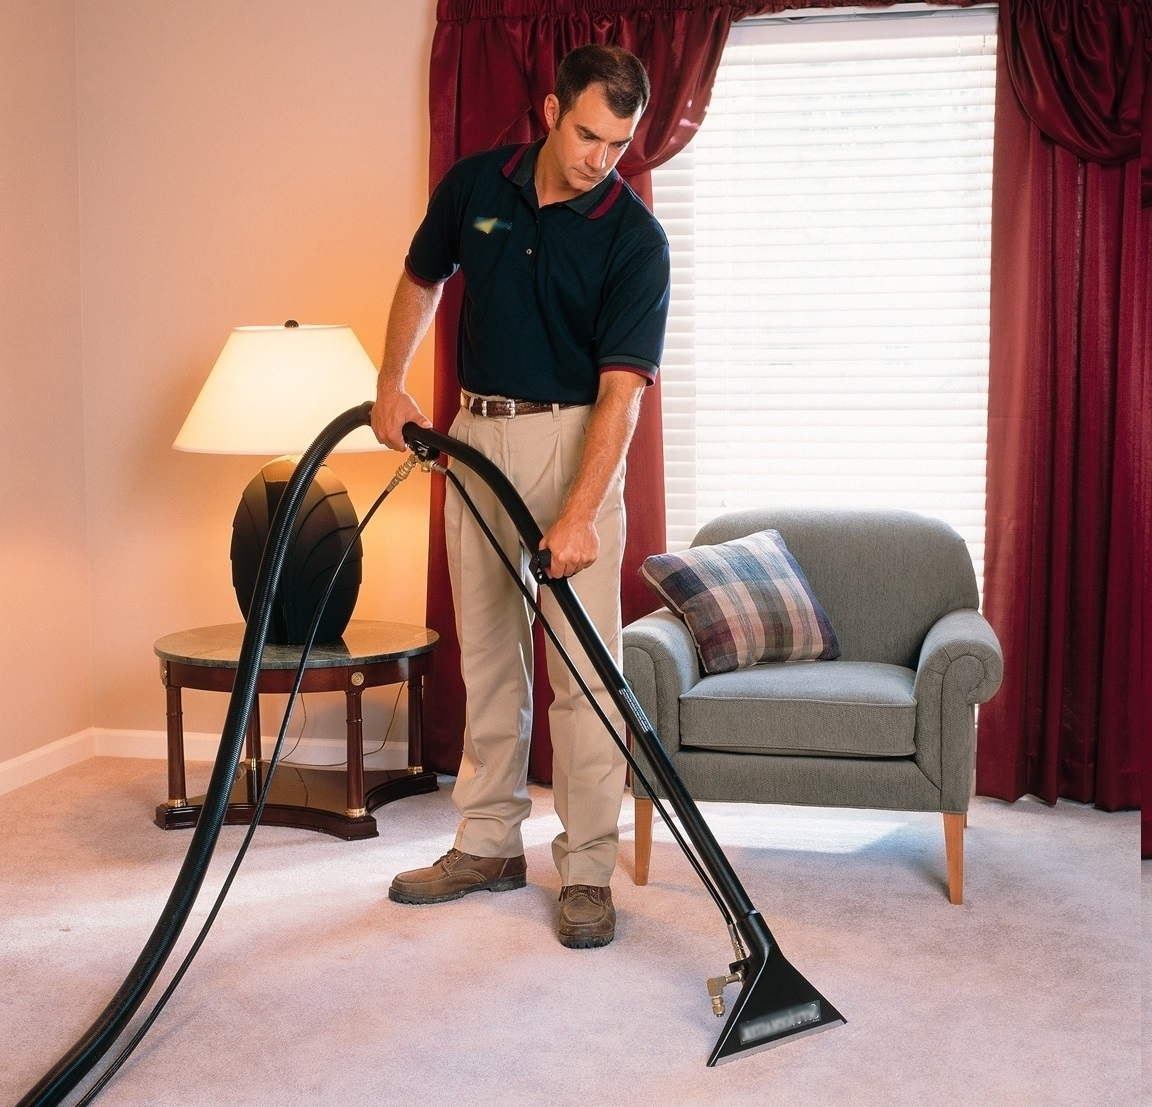 Simply DIY Carpet Cleaning (View 7 of 8)